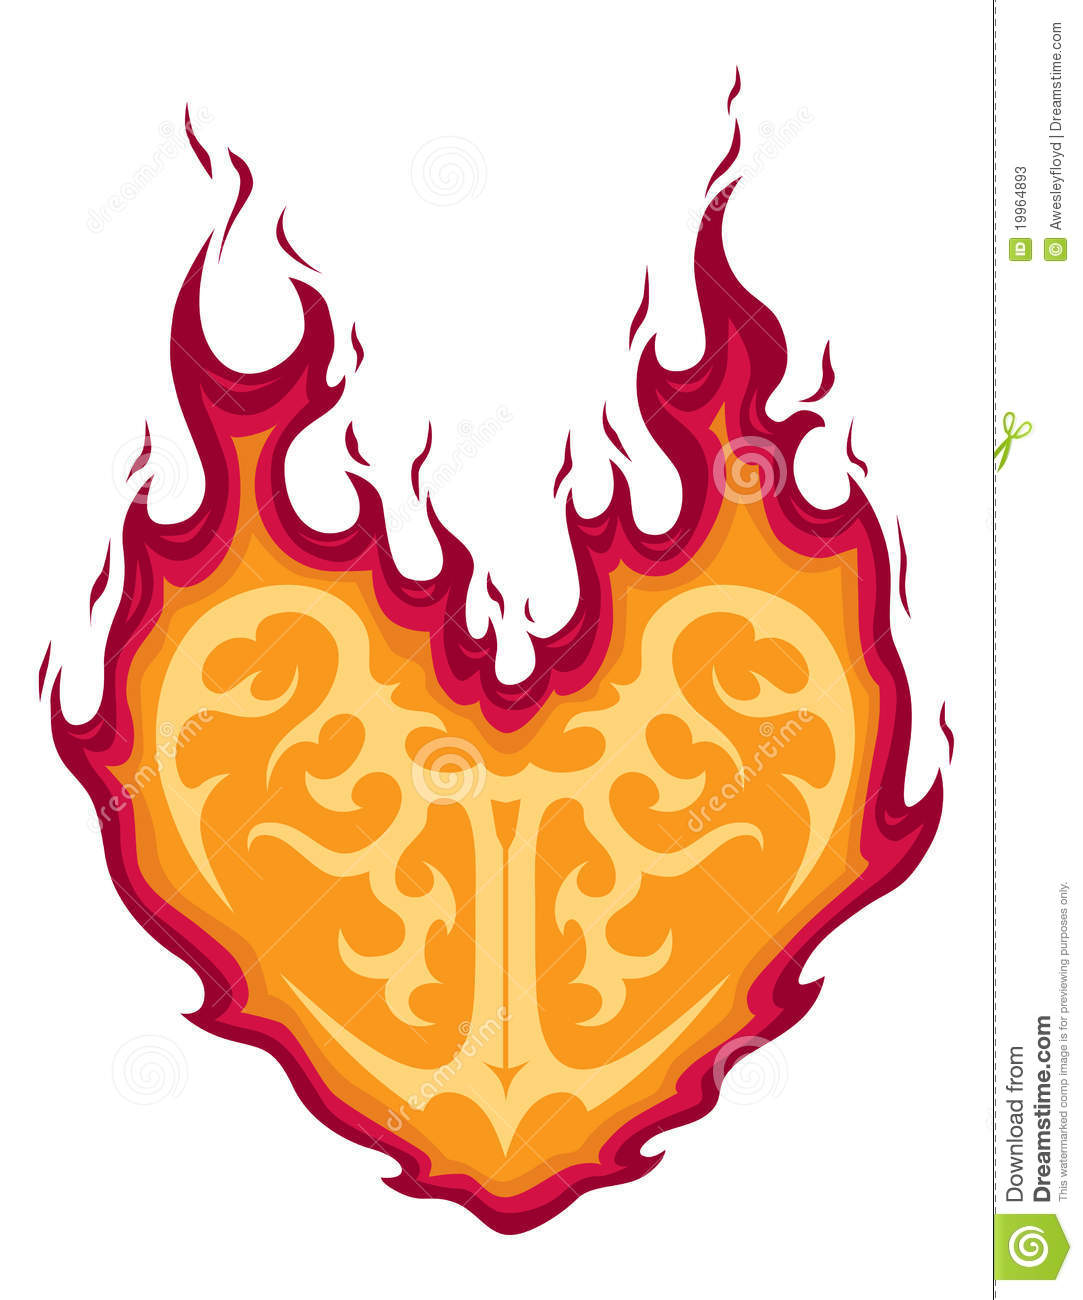 flaming heart tattoo pictures to pin on pinterest tattooskid. Black Bedroom Furniture Sets. Home Design Ideas